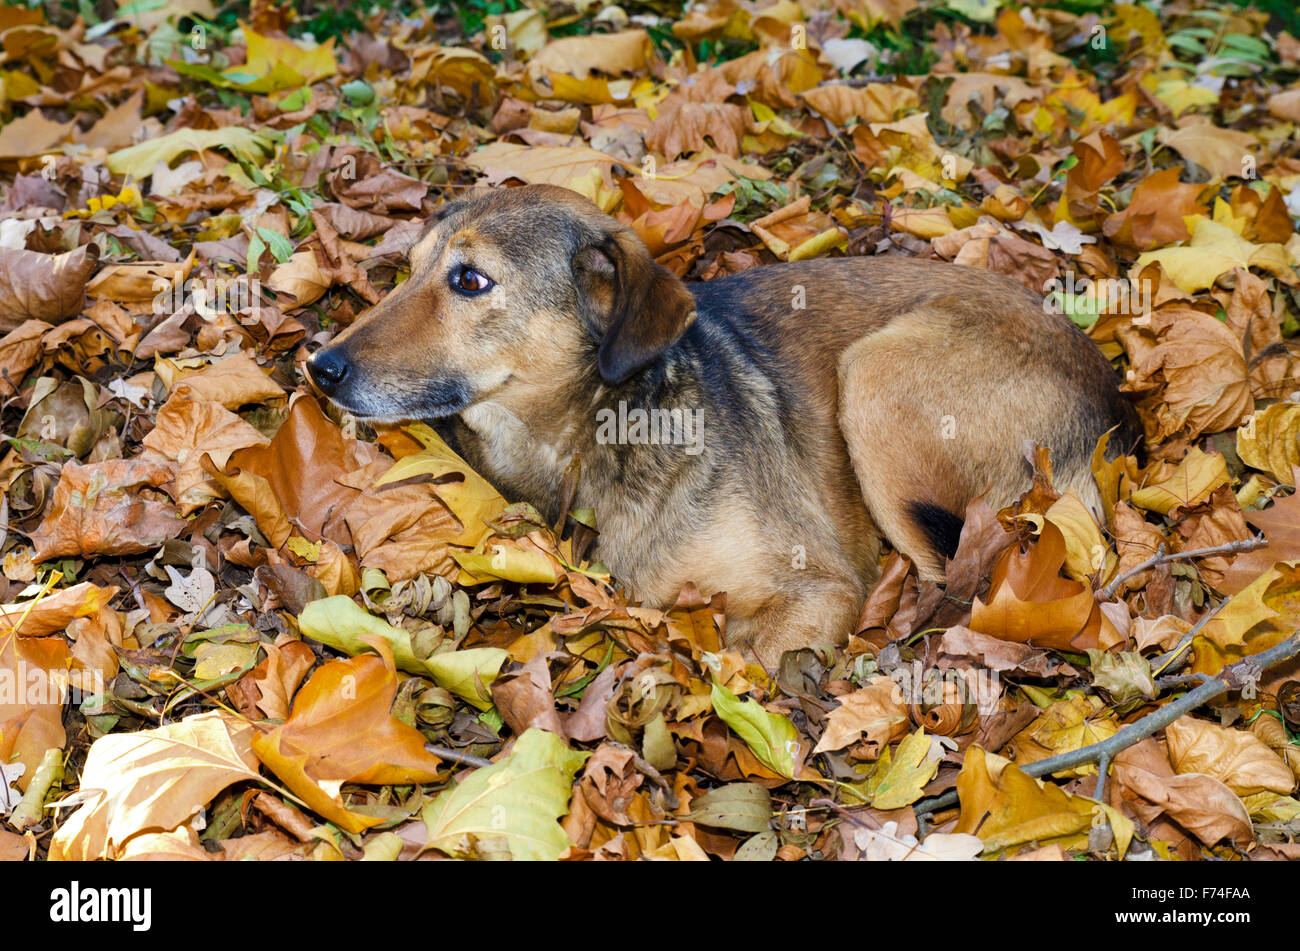 Abandoned dog nestles in the autumn leaves in a park - Stock Image